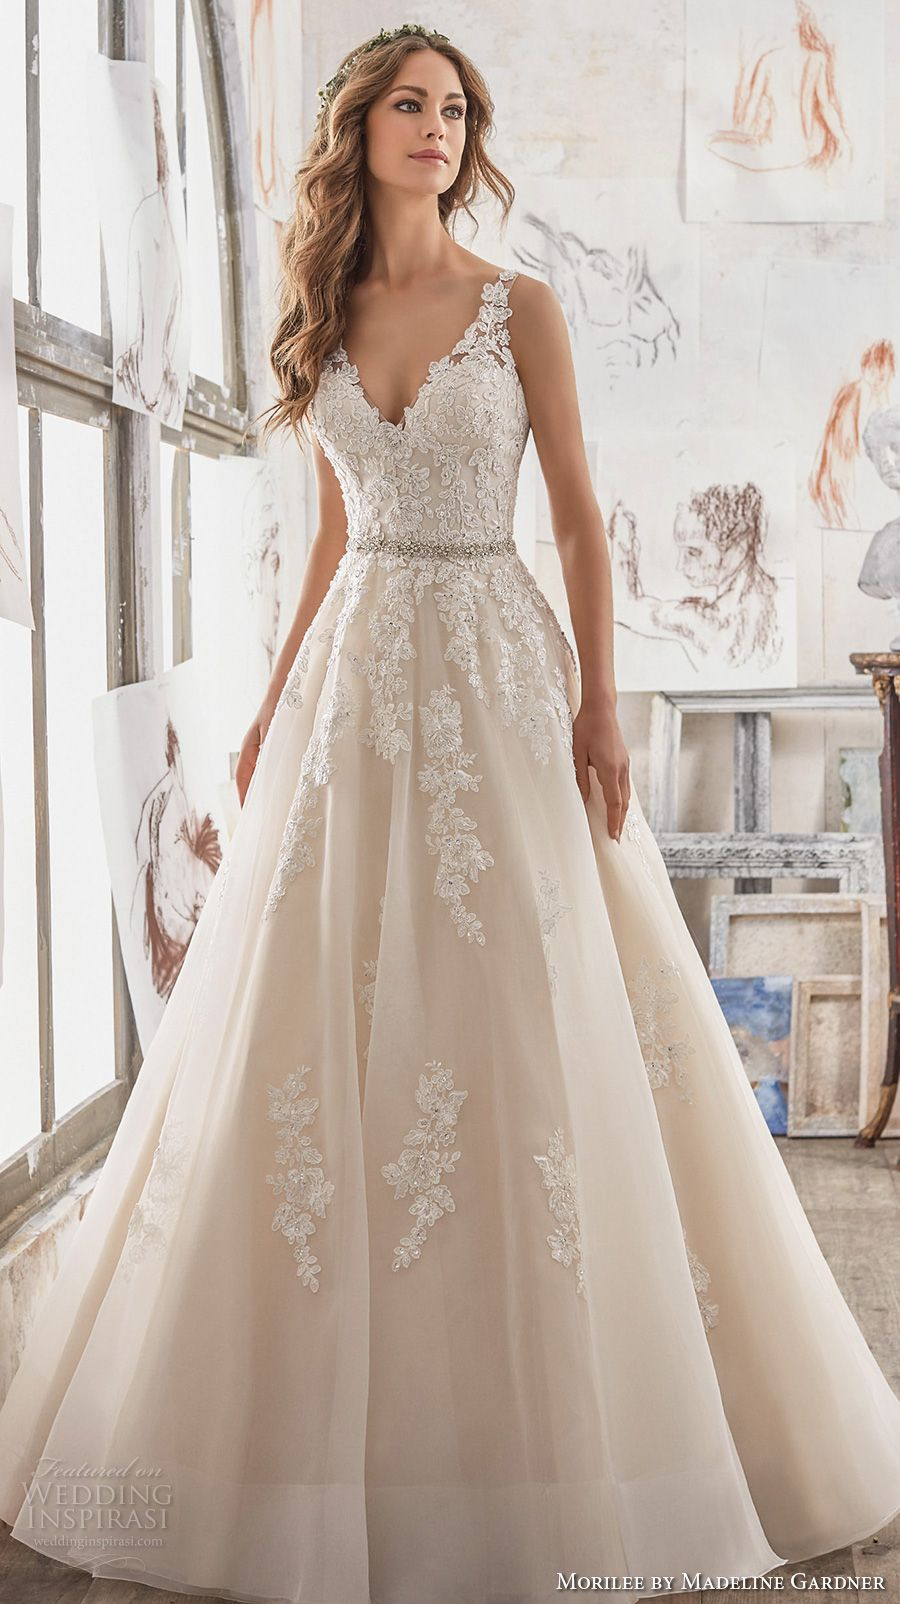 Morilee by madeline gardner spring 2017 wedding dresses for Dresses for spring wedding